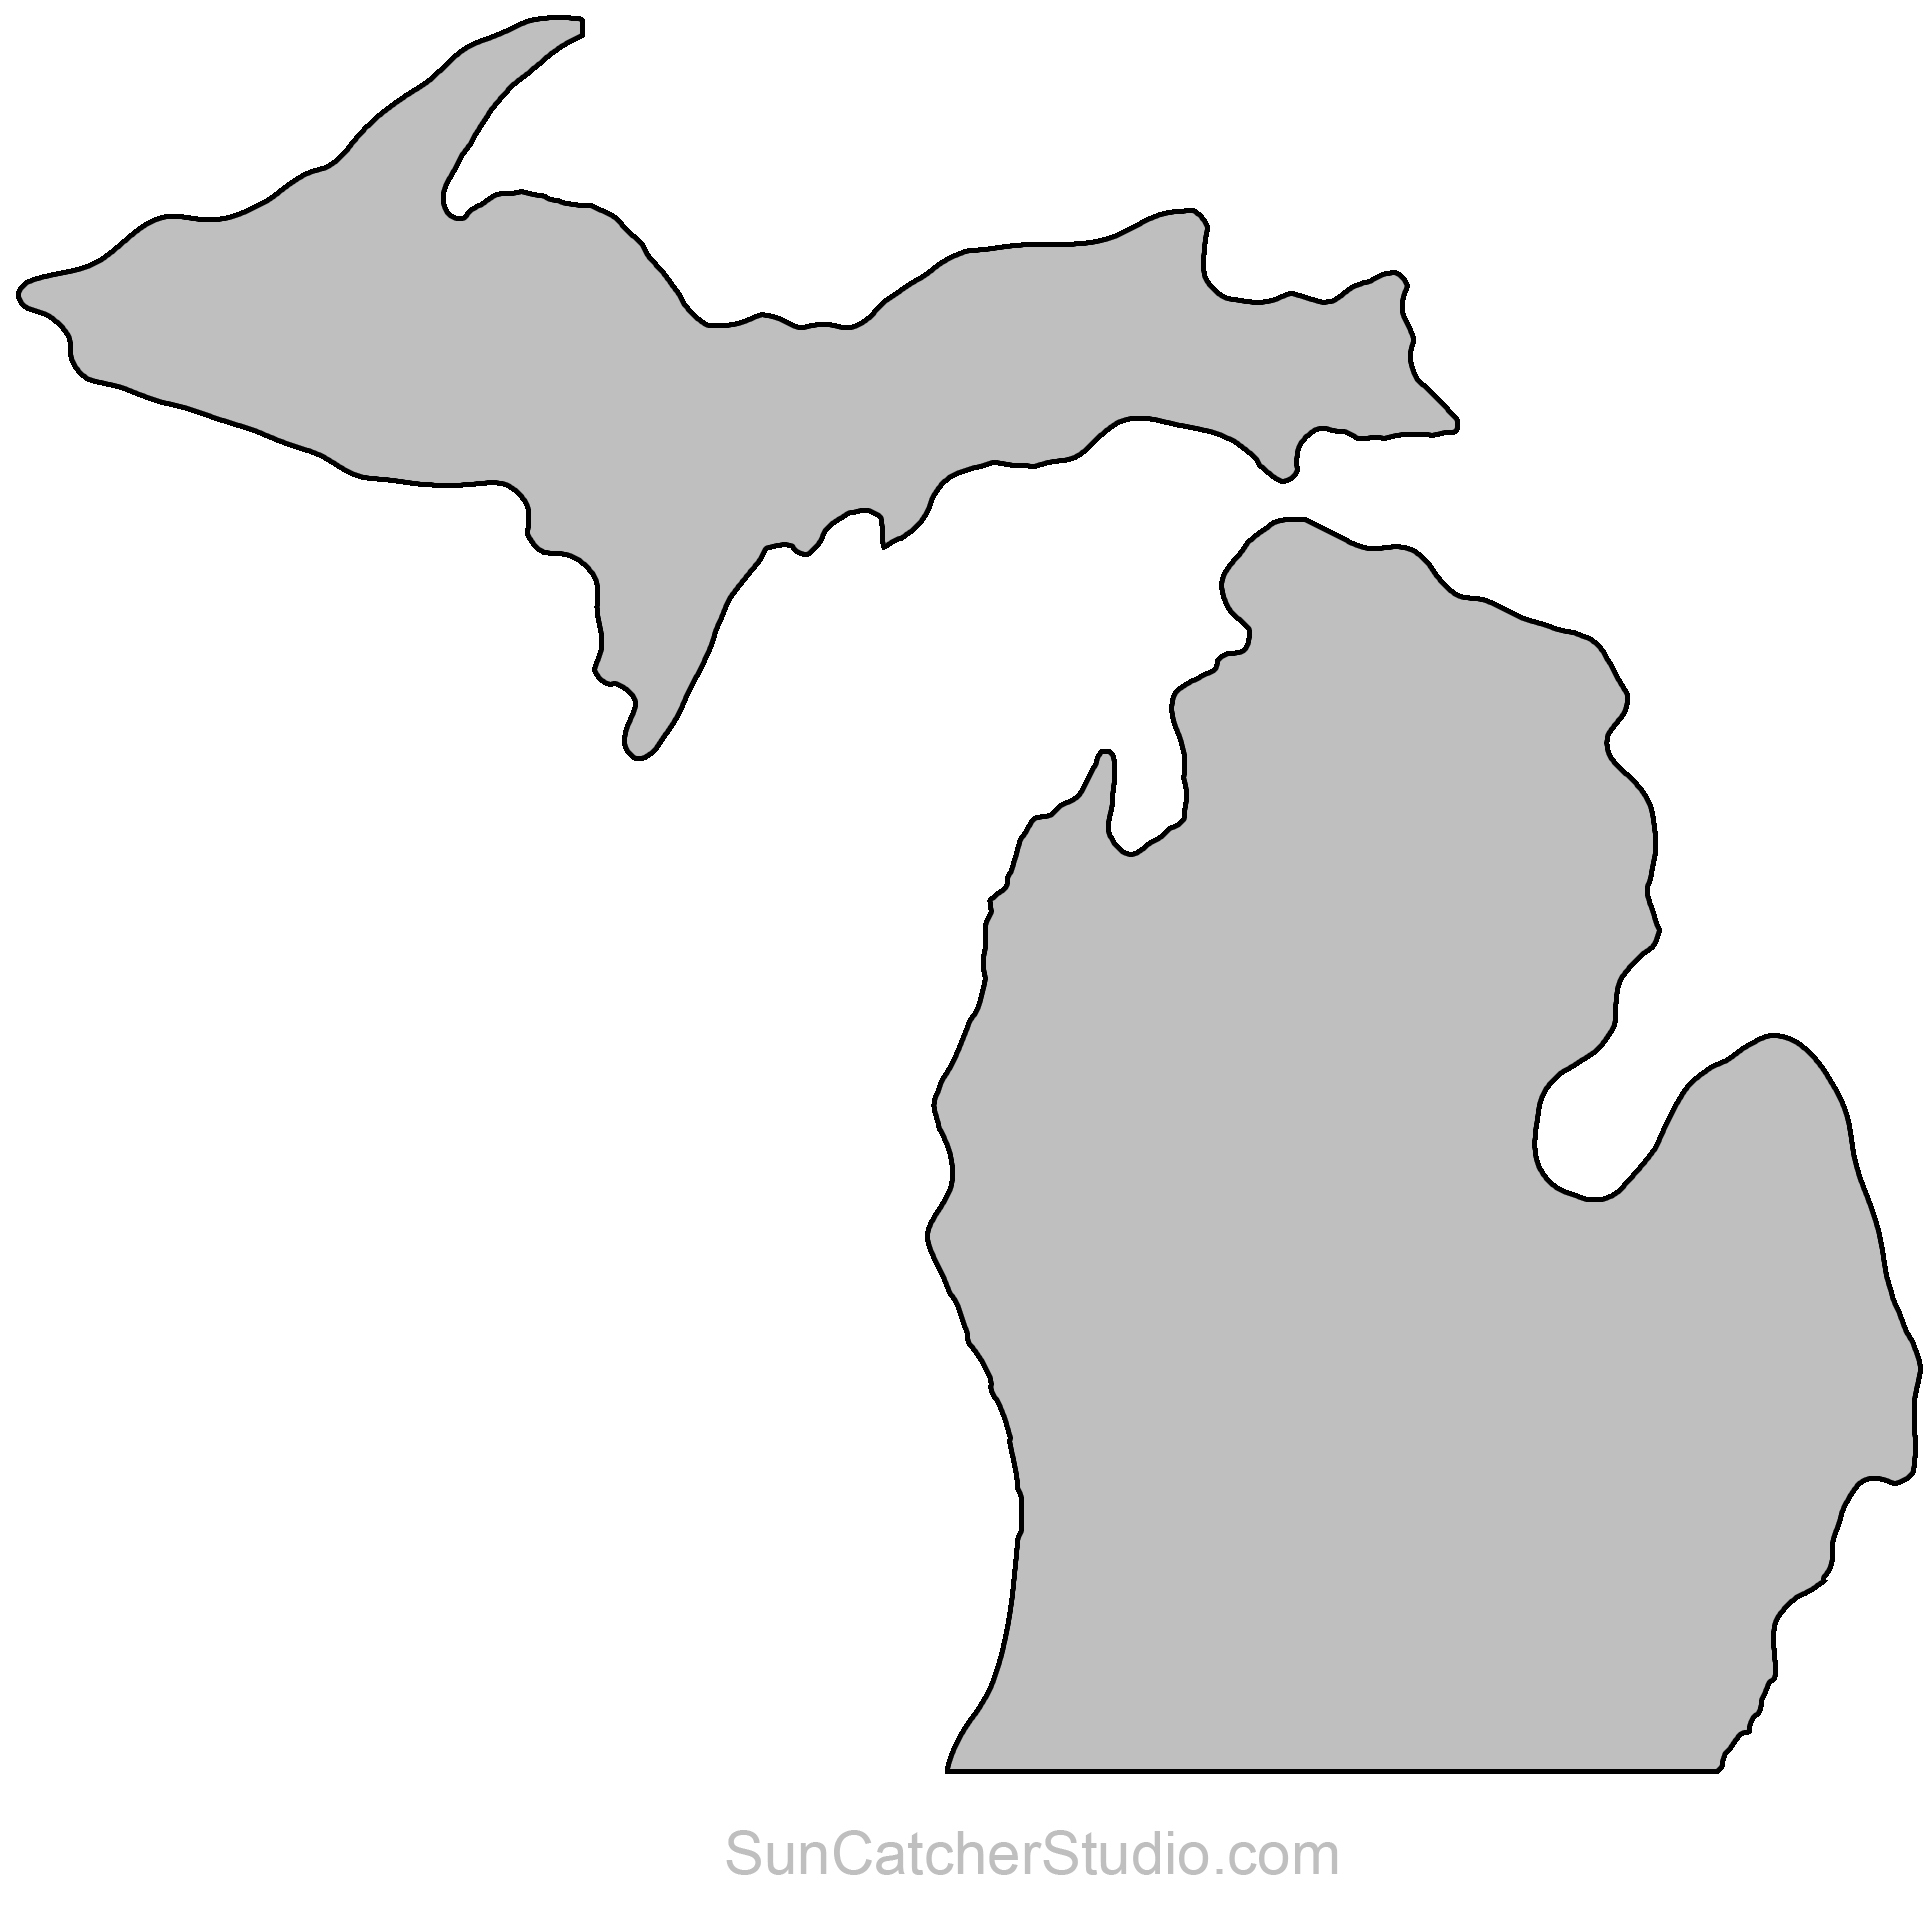 State Outlines Maps Stencils Patterns Clip Art All 50 States Michigan Art Michigan Decor Michigan Outline